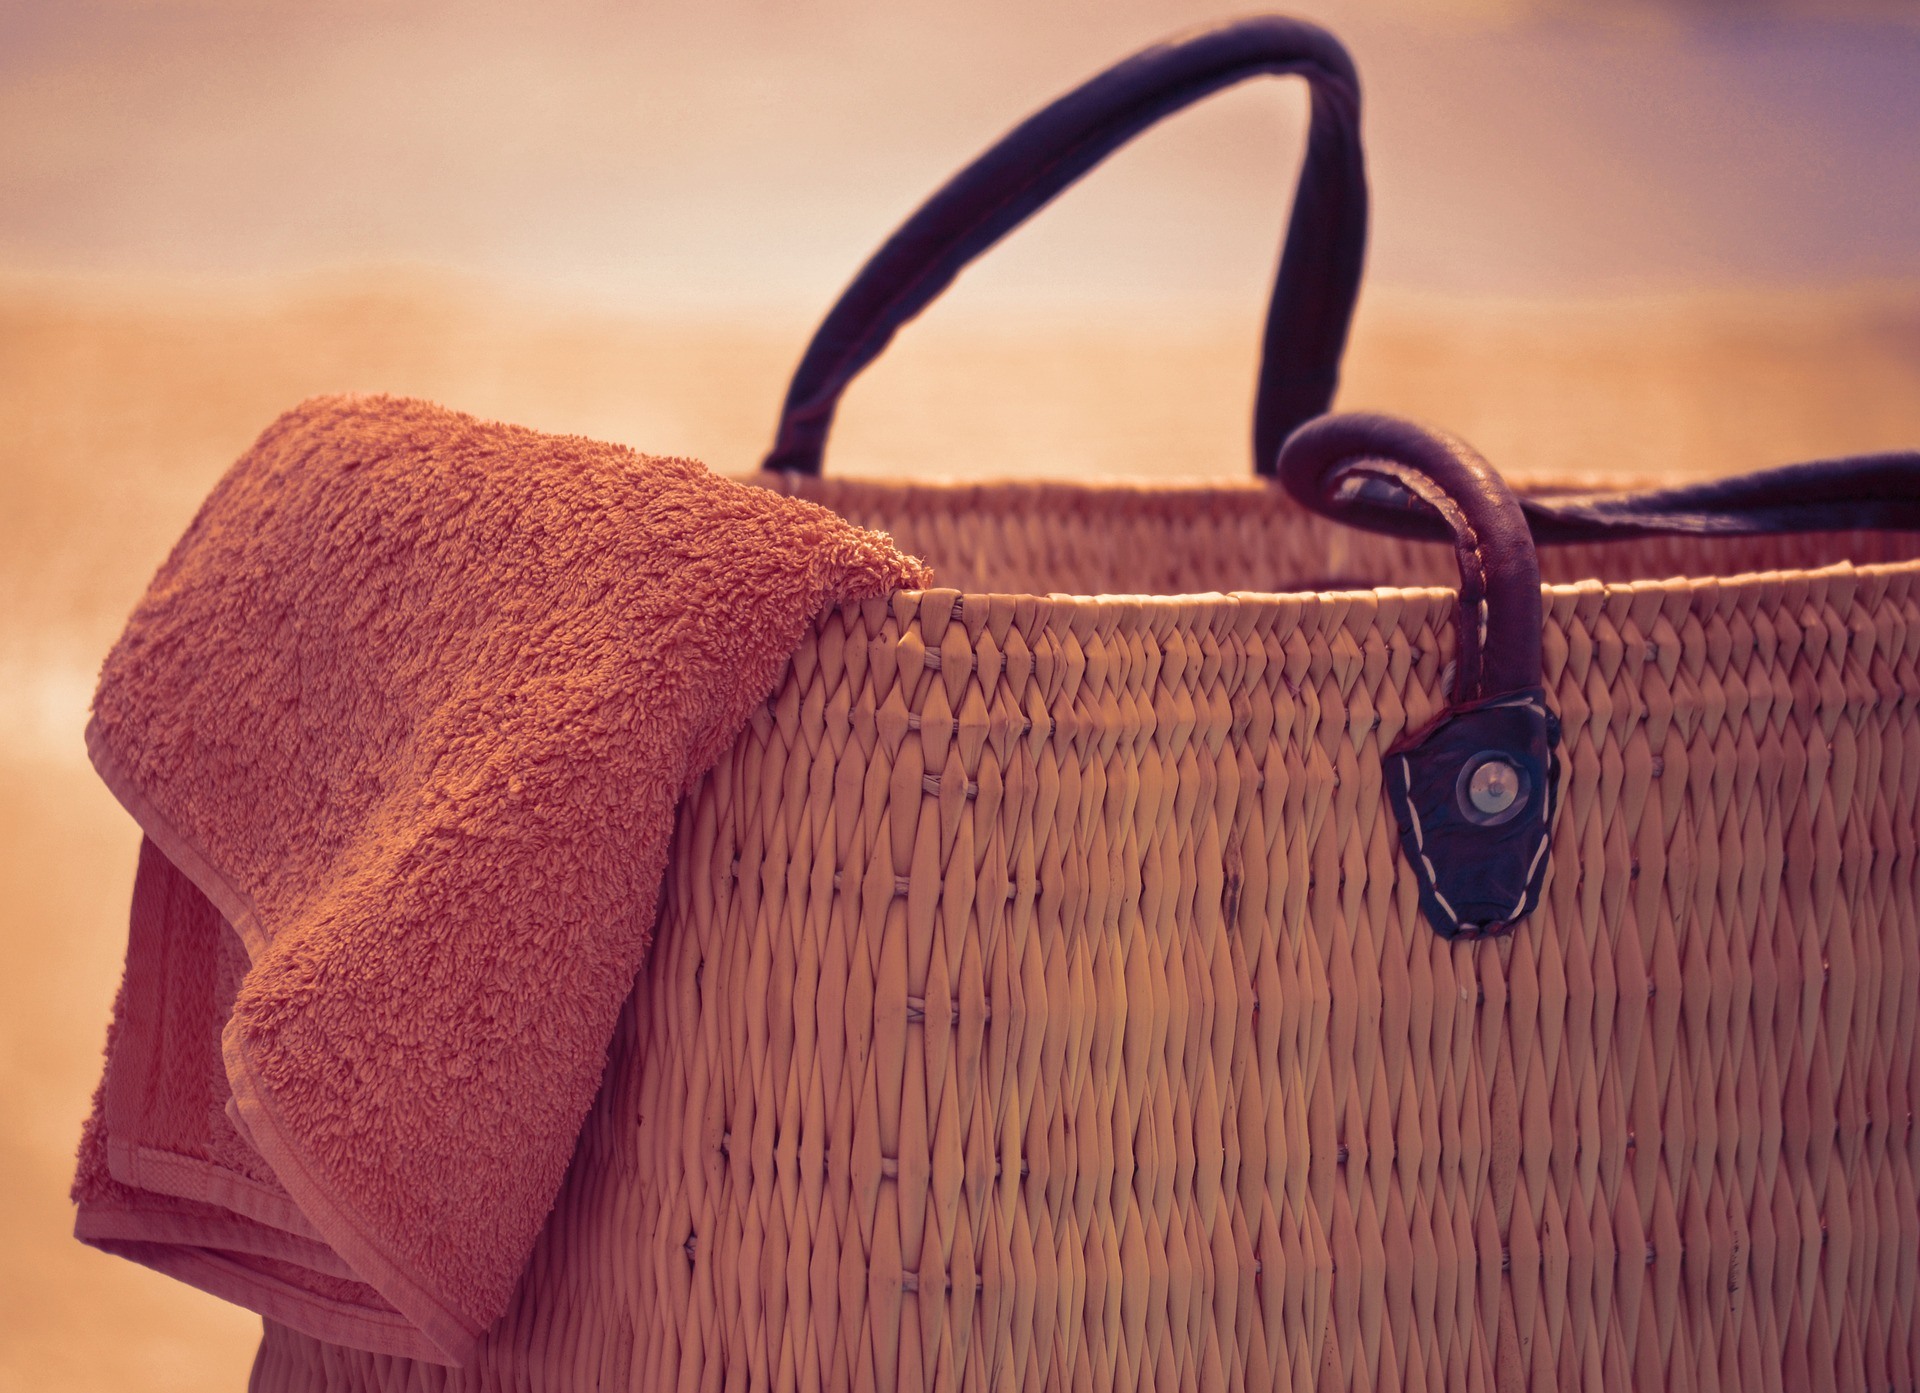 beach bag and towel